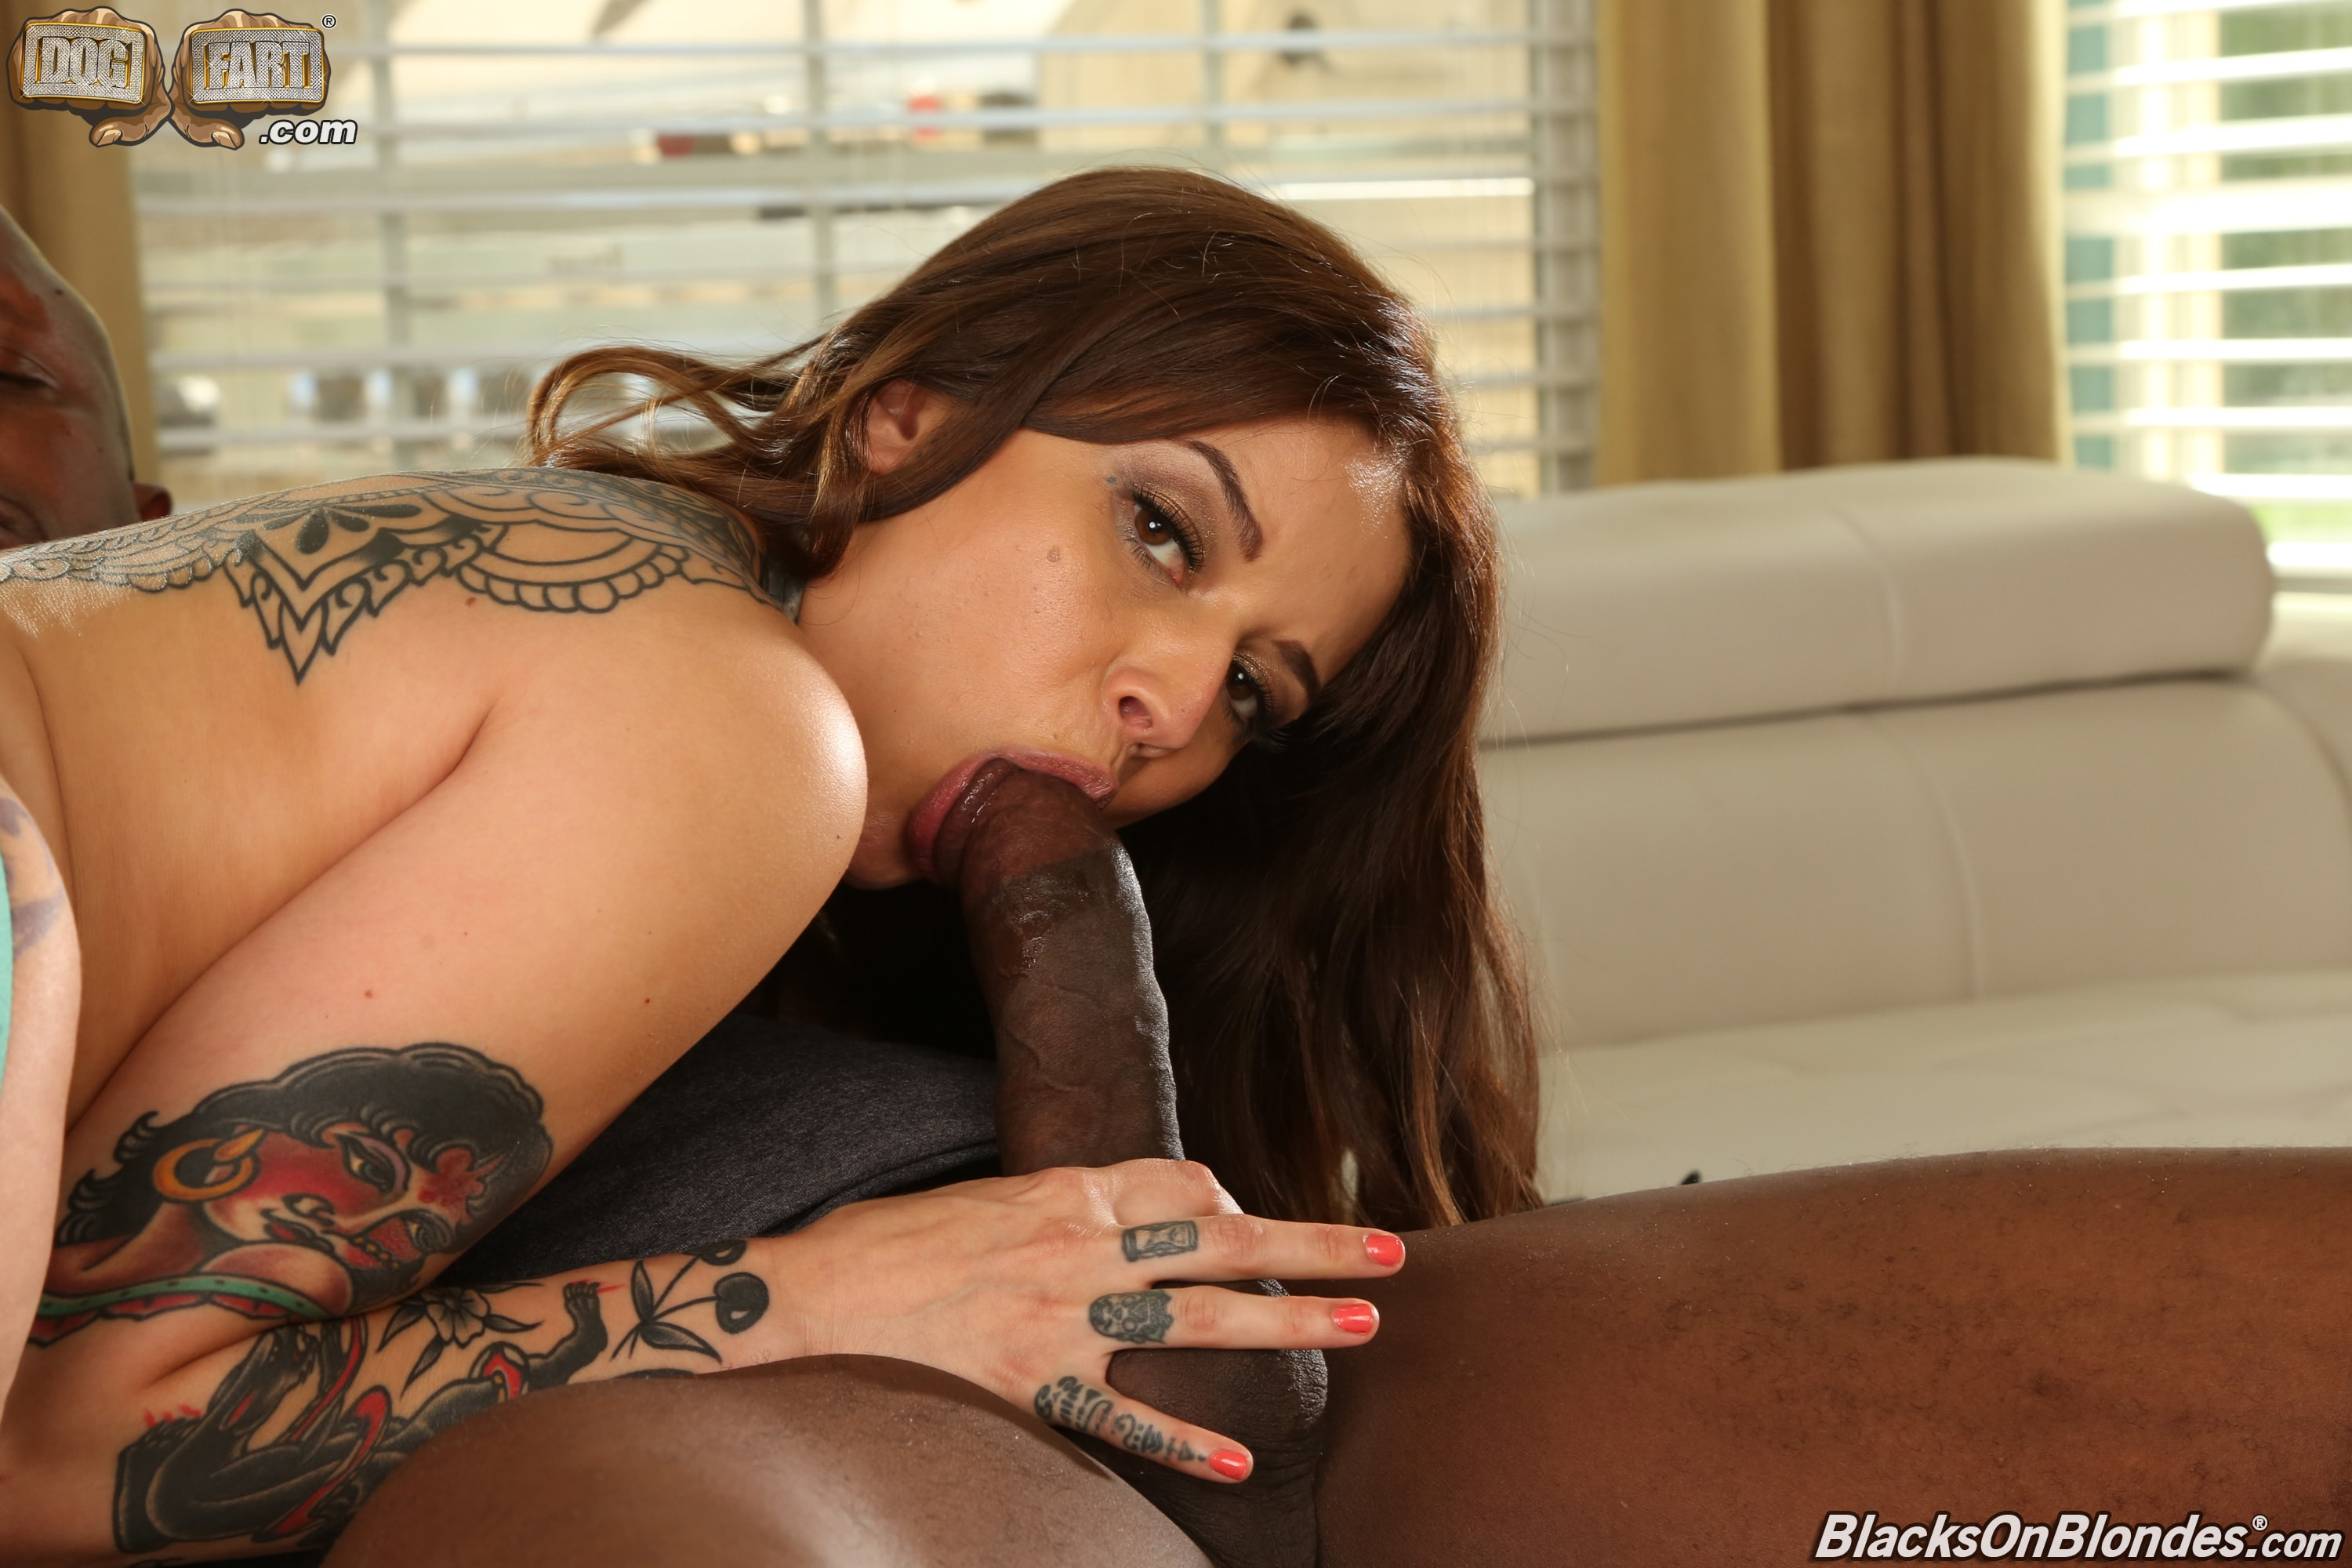 Dogfart '- Blacks On Blondes - Scene 2' starring Vanessa Vega (Photo 10)